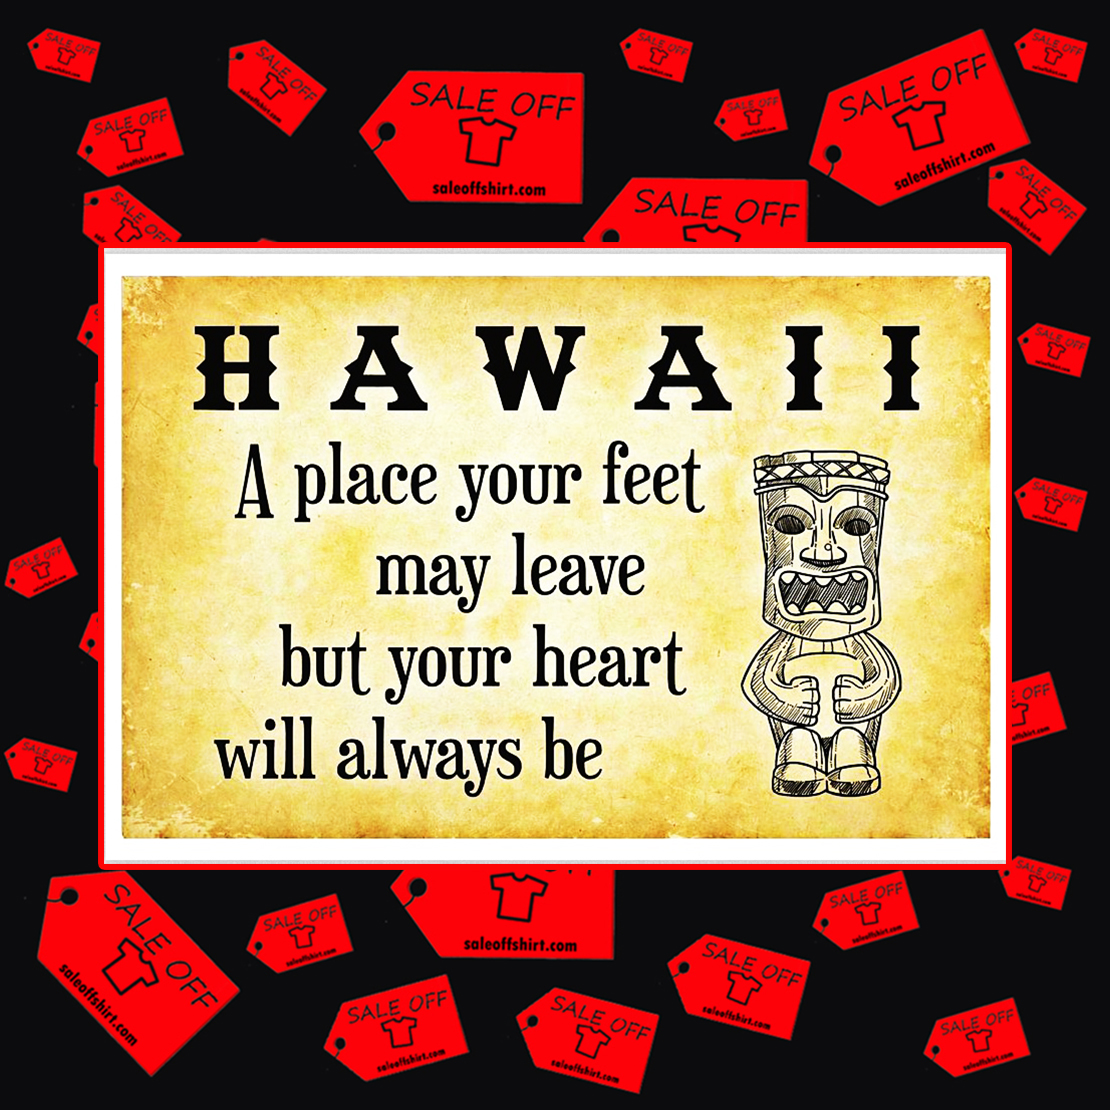 Hawaii a place your feet may leave but your heart will always be poster 17x11